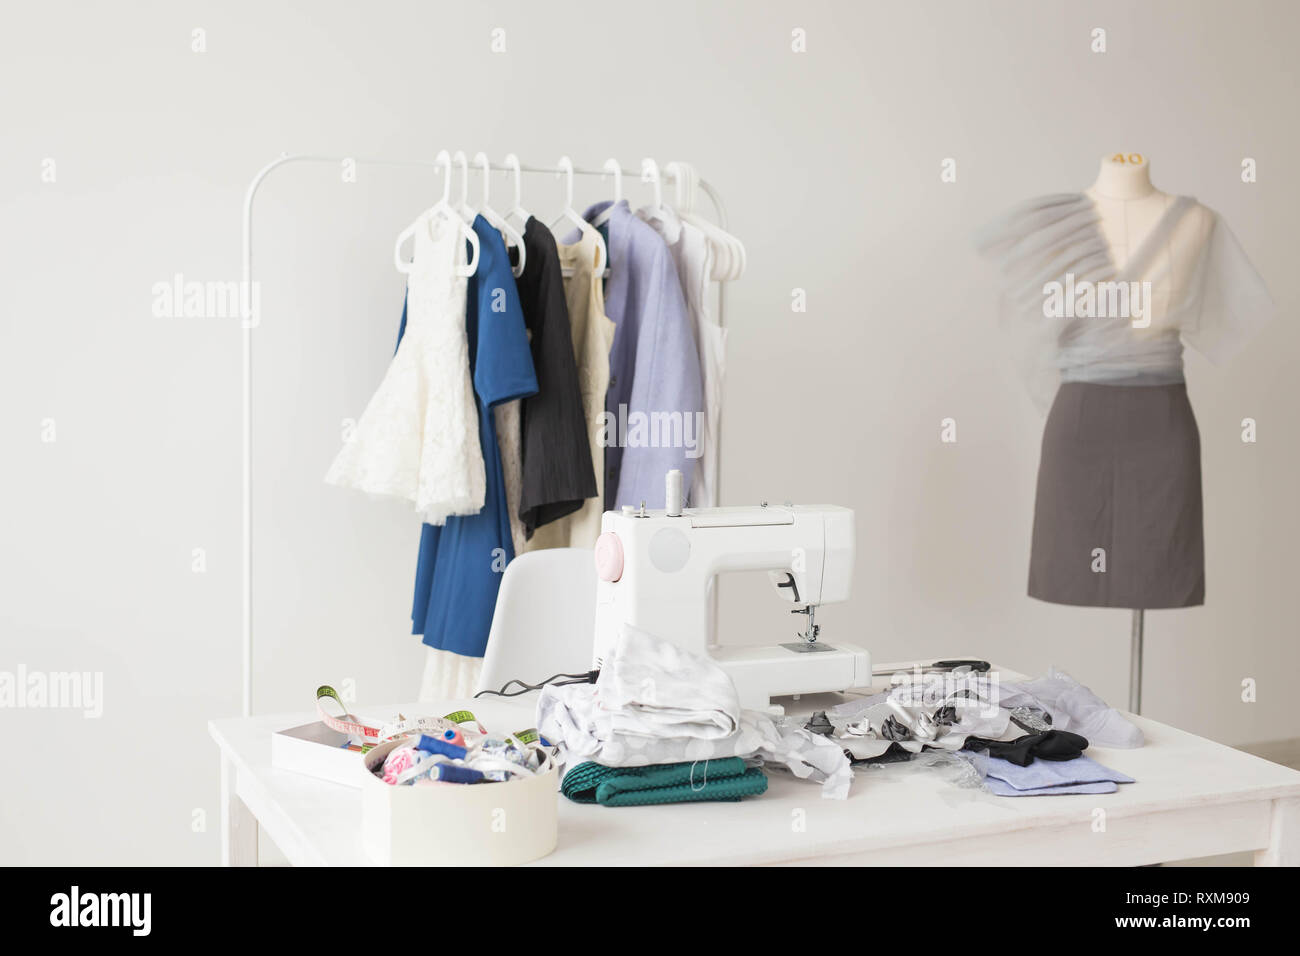 Dressmaker Fashion Designer And Tailor Concept Photo Of The Working Environment Seamstress Stock Photo Alamy